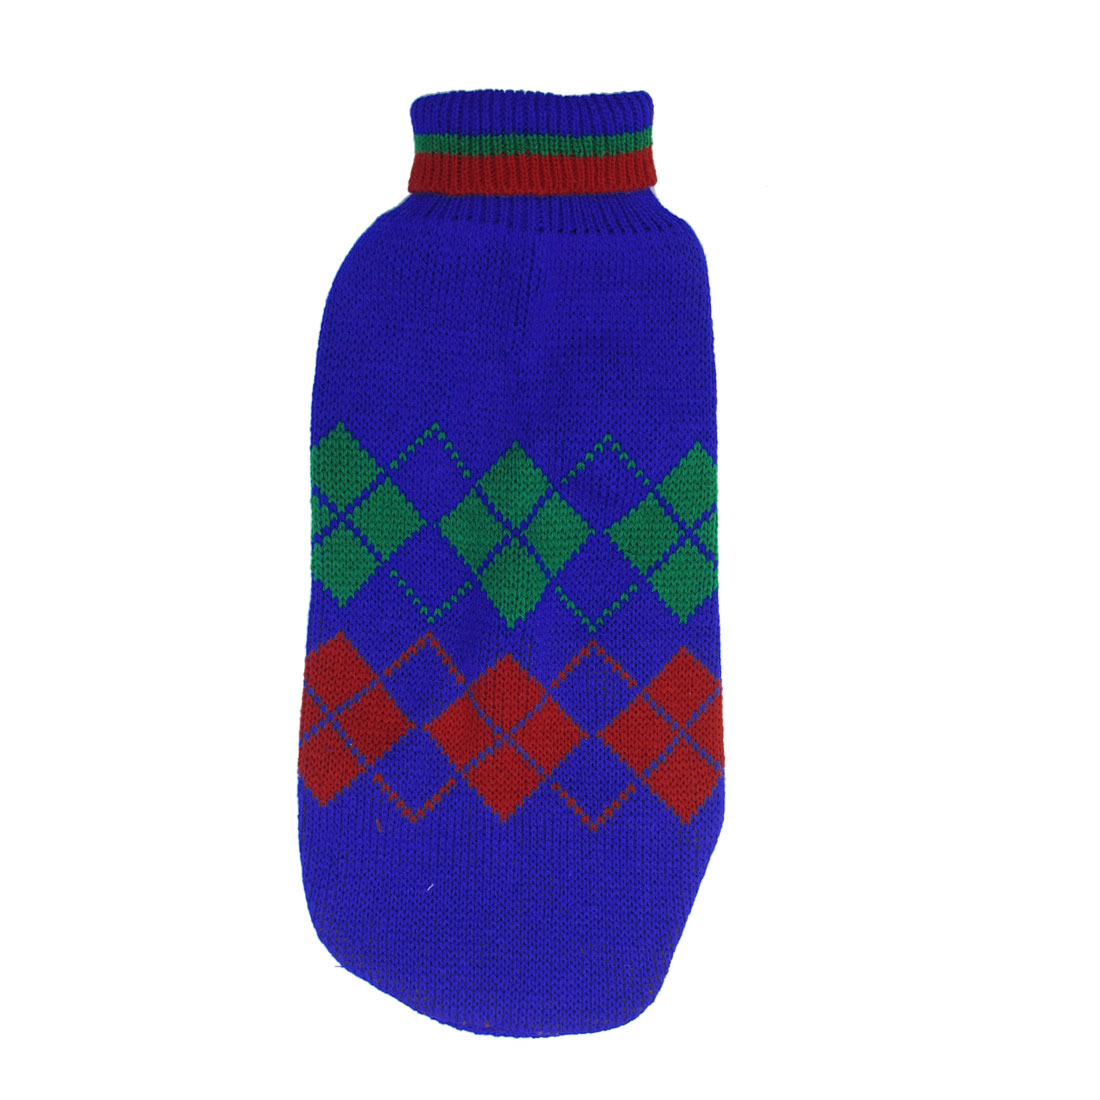 Blue Red Green Knitting Rhombus Print Turtleneck Pet Doggy Apparel Sweater M